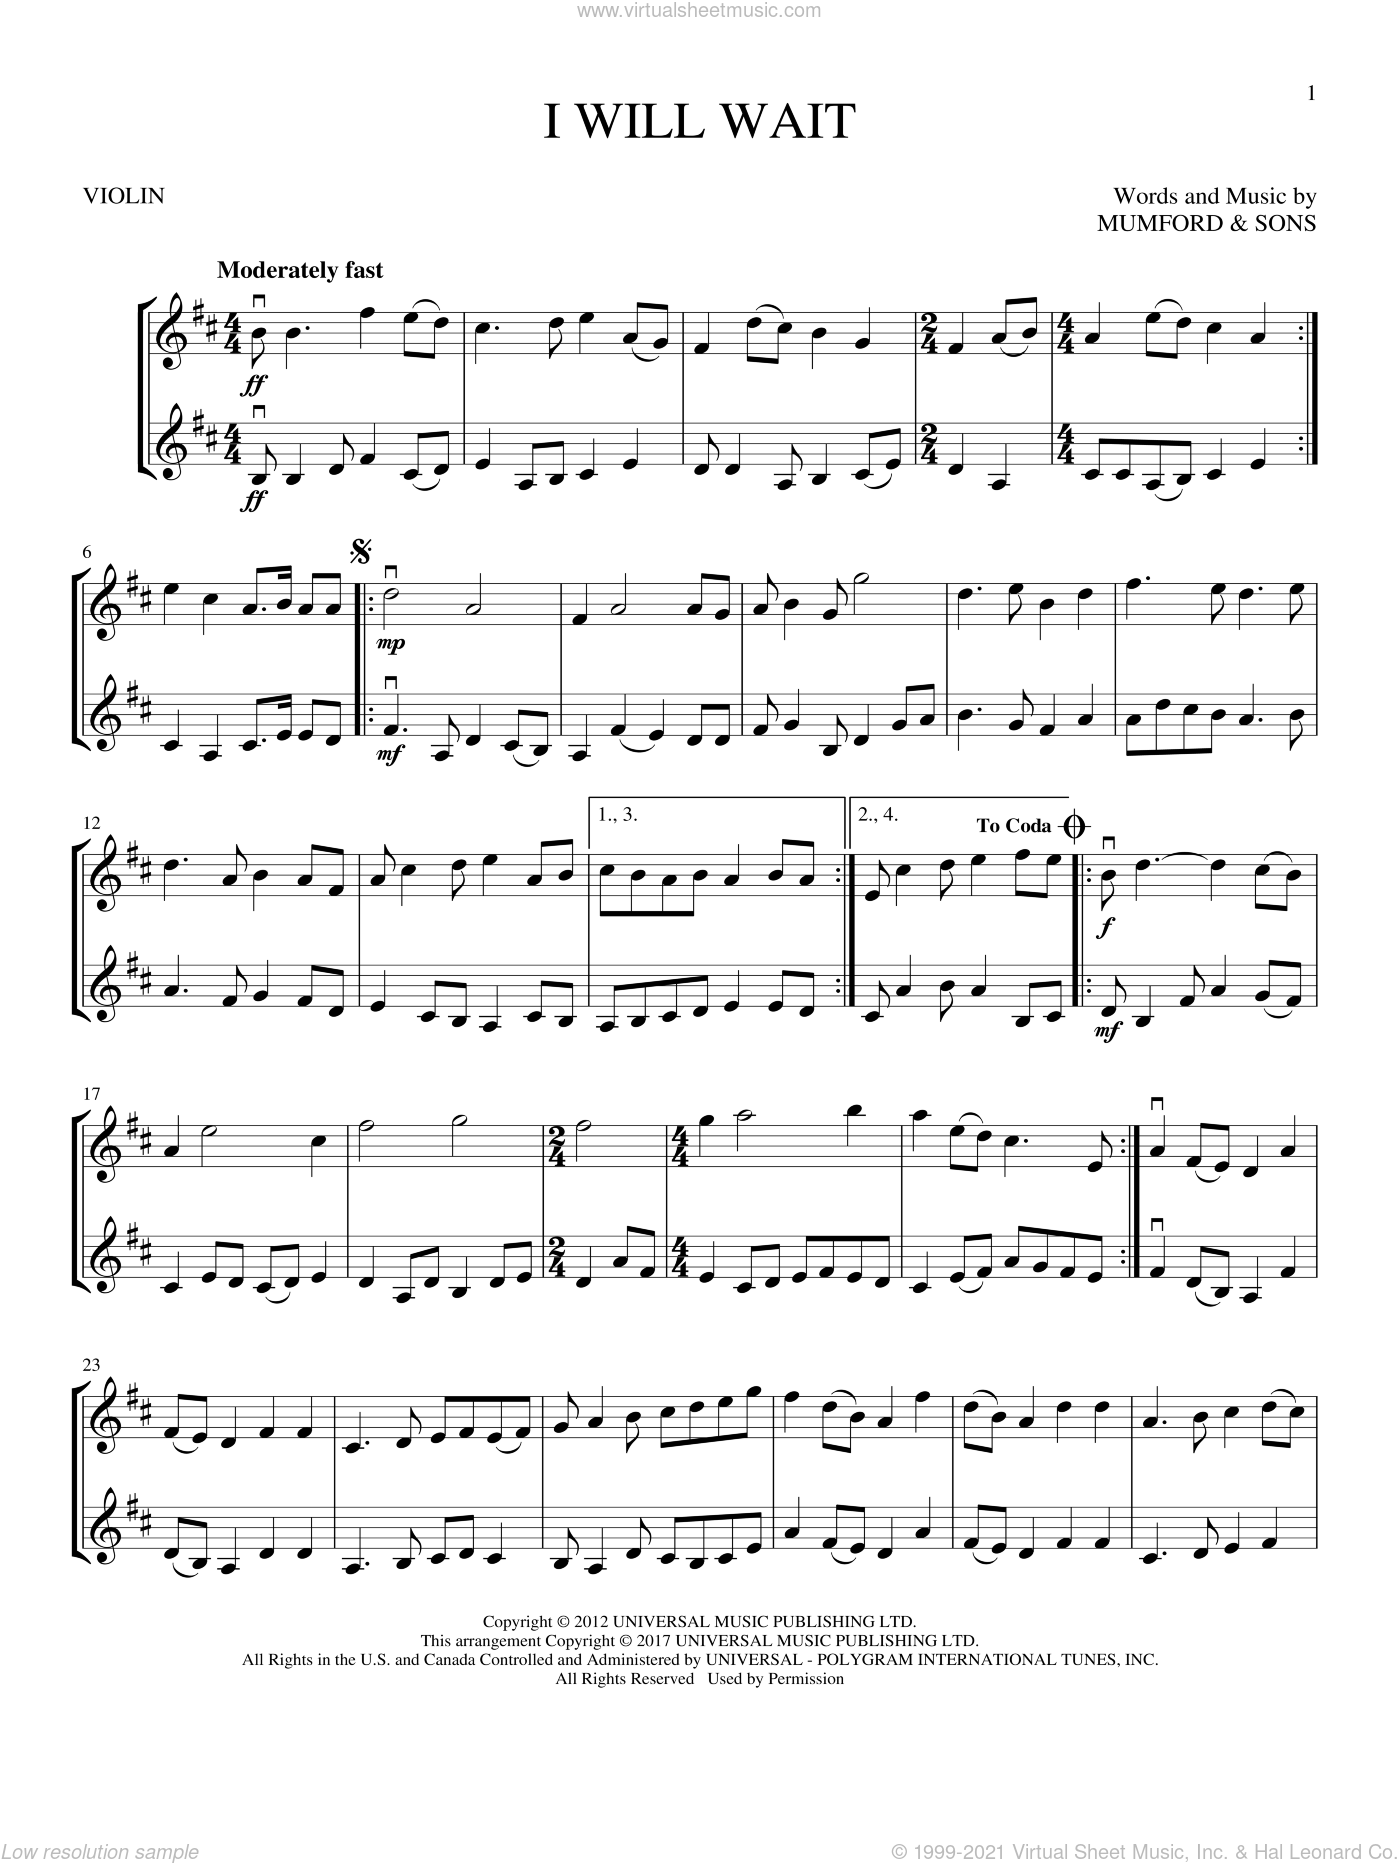 I Will Wait sheet music for two violins (duets, violin duets) by Mumford & Sons, intermediate skill level